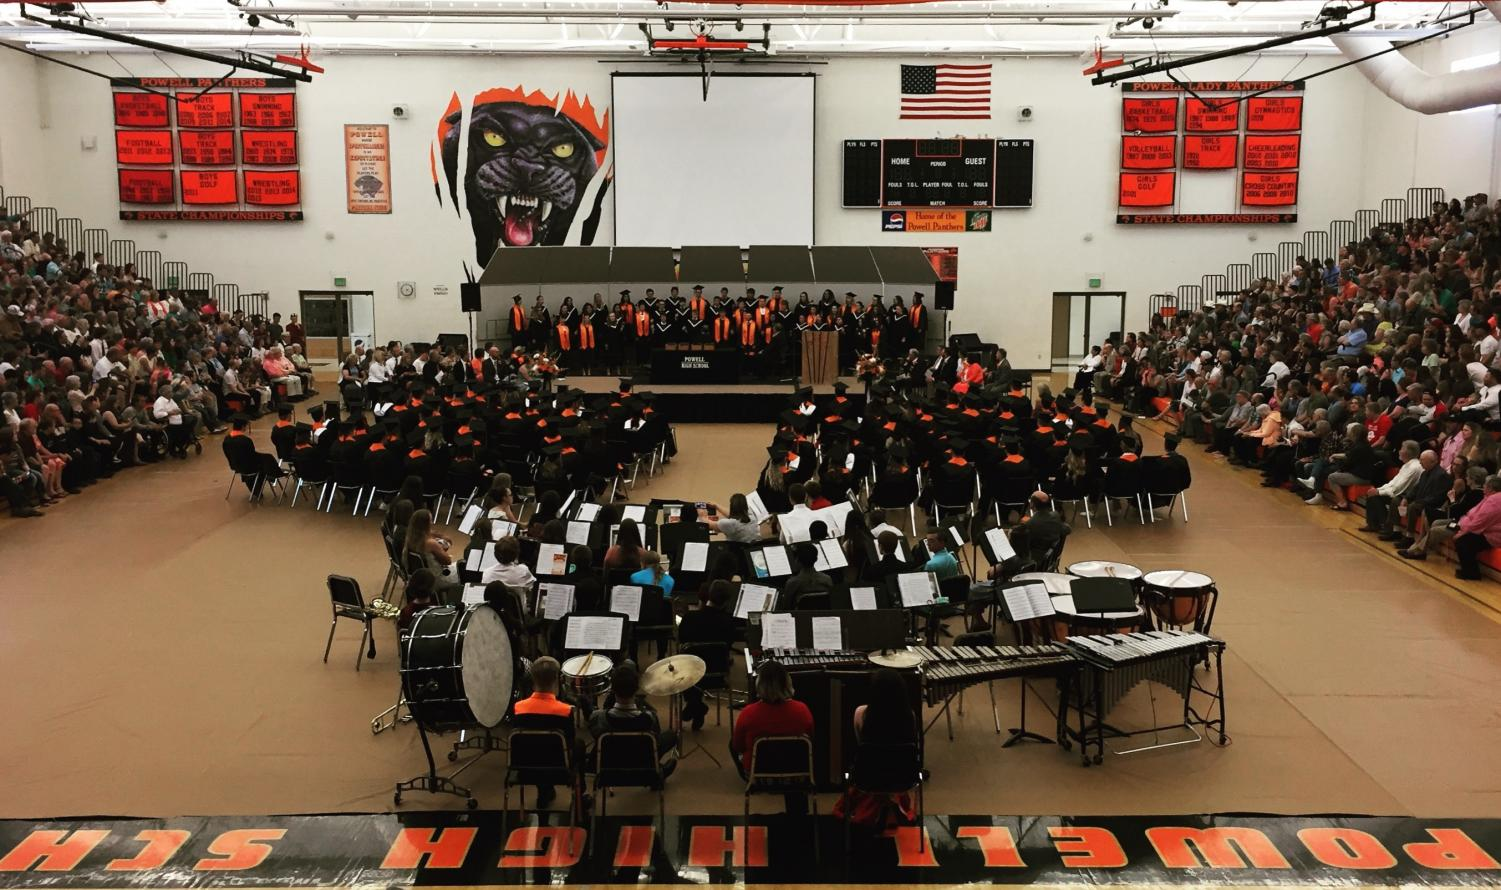 The graduating class of 2018 and audience give their attention to the Powell High School choir.